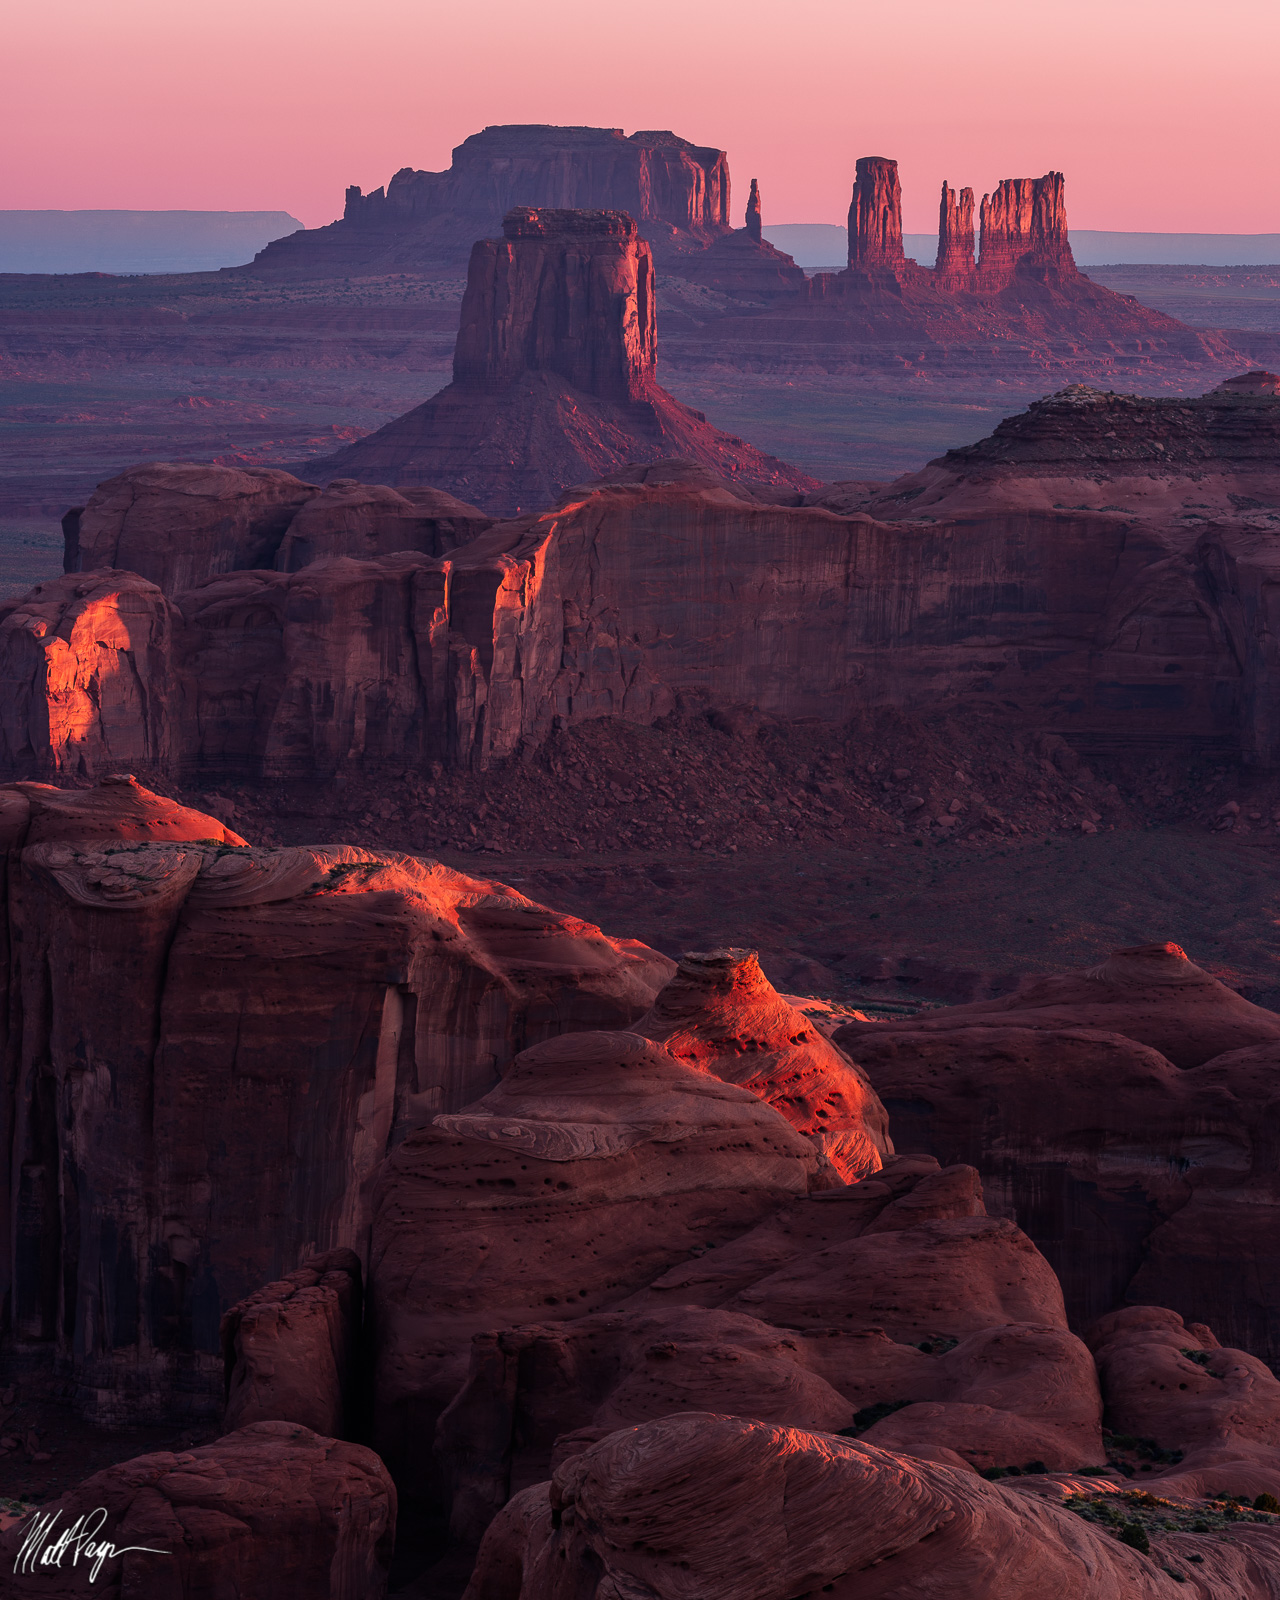 Arizona, Grand Scenic, Hunts Mesa, Landscape, Three Sisters, Monument Valley, Navajo Land, ancestors, desert, photo